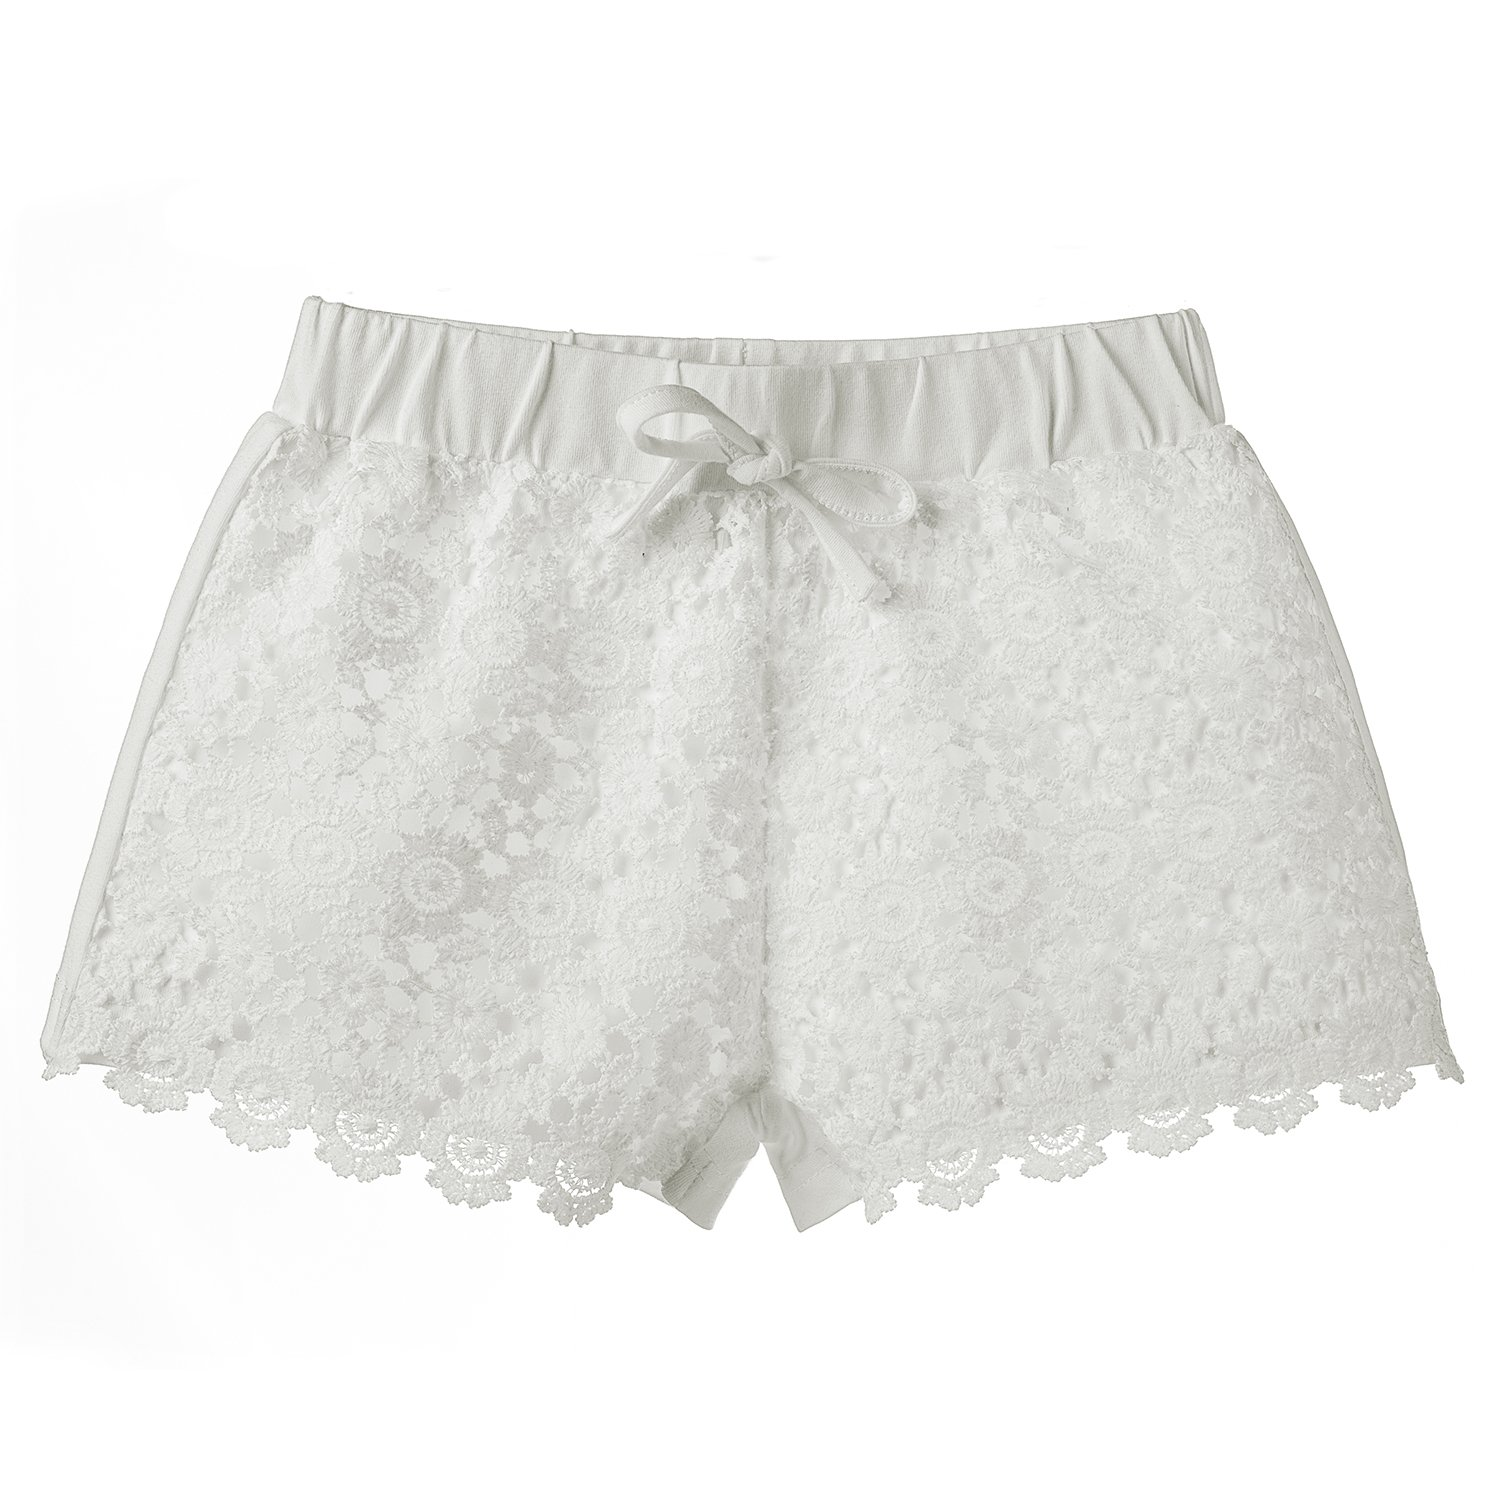 ISPED Girls Shorts Solid Color Short with Exquisite Lace